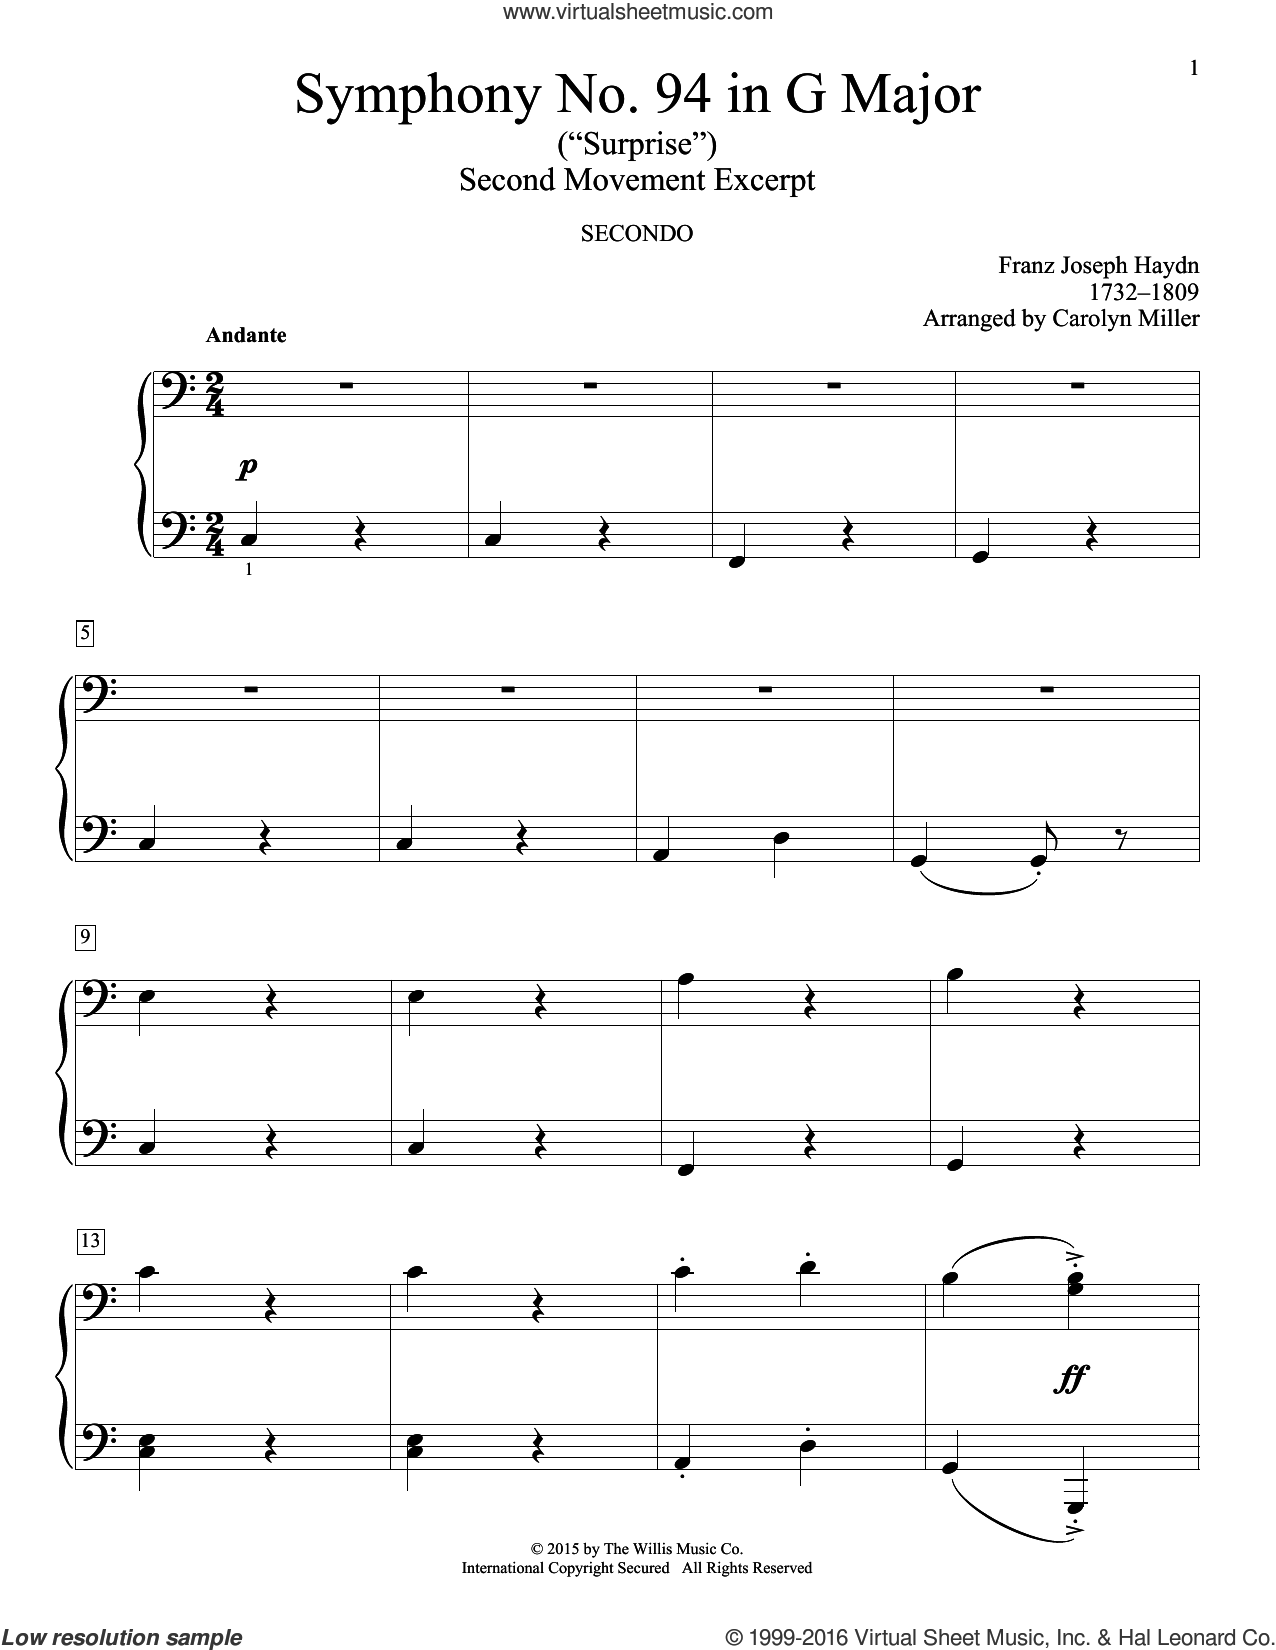 Symphony No. 94 In G Major (Surprise), Second Movement Excerpt sheet music for piano four hands by Franz Joseph Haydn and Carolyn Miller, classical score, intermediate skill level